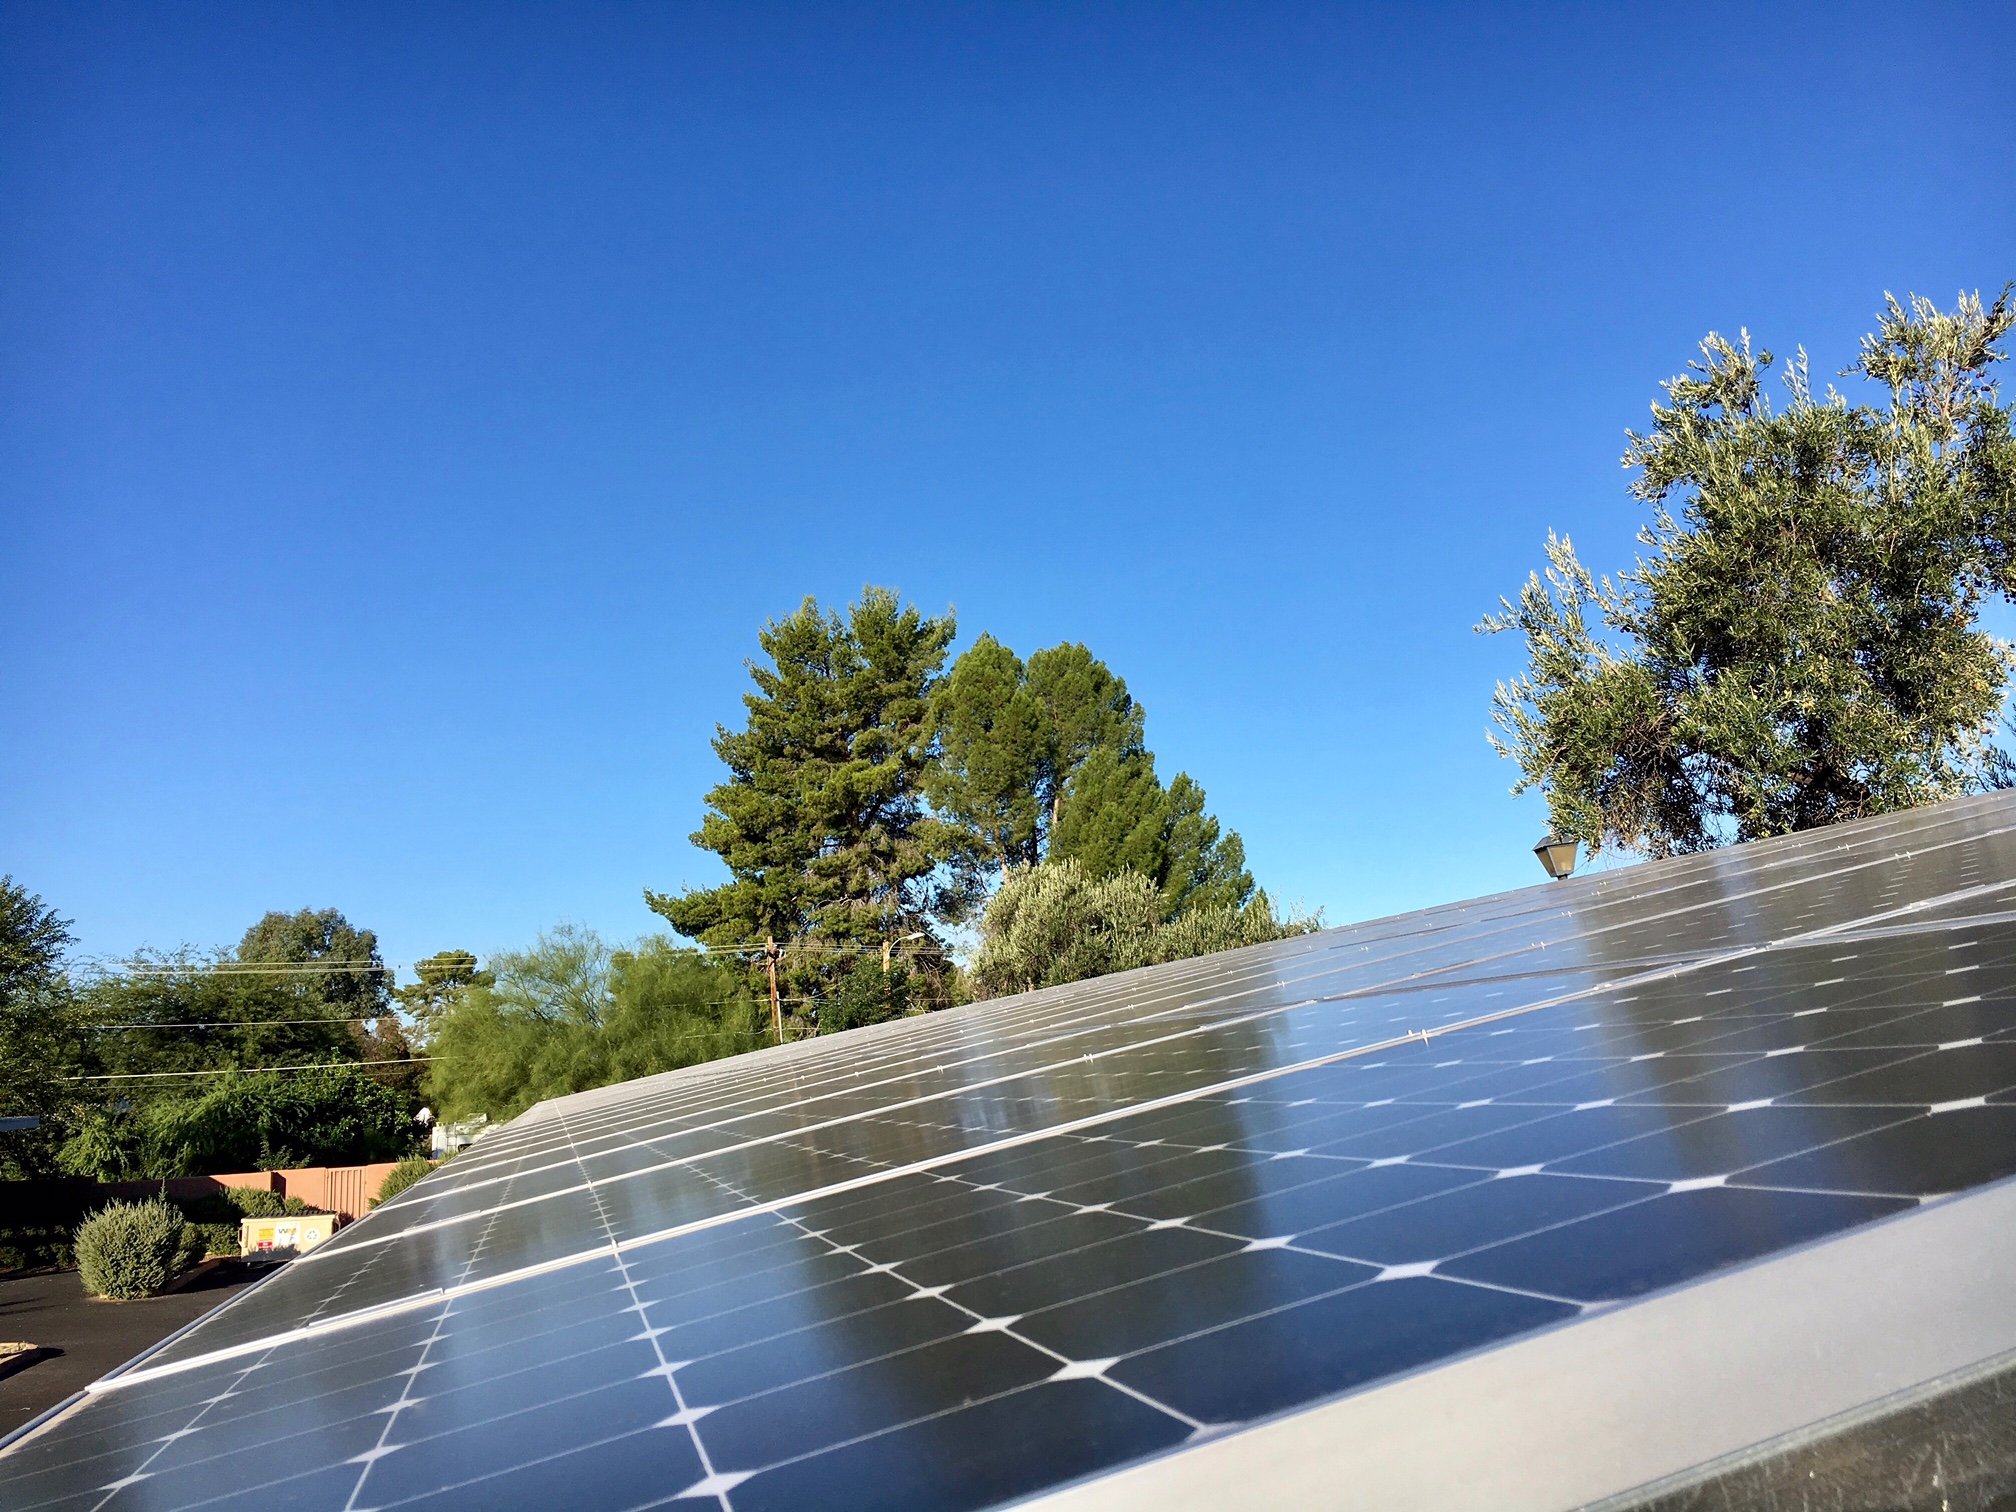 News Technicians For Sustainability Tucson Solar Panel Installation Fair Project Idea Calculation Exercise A Battery Charger The State Of Tep And Trico Customers